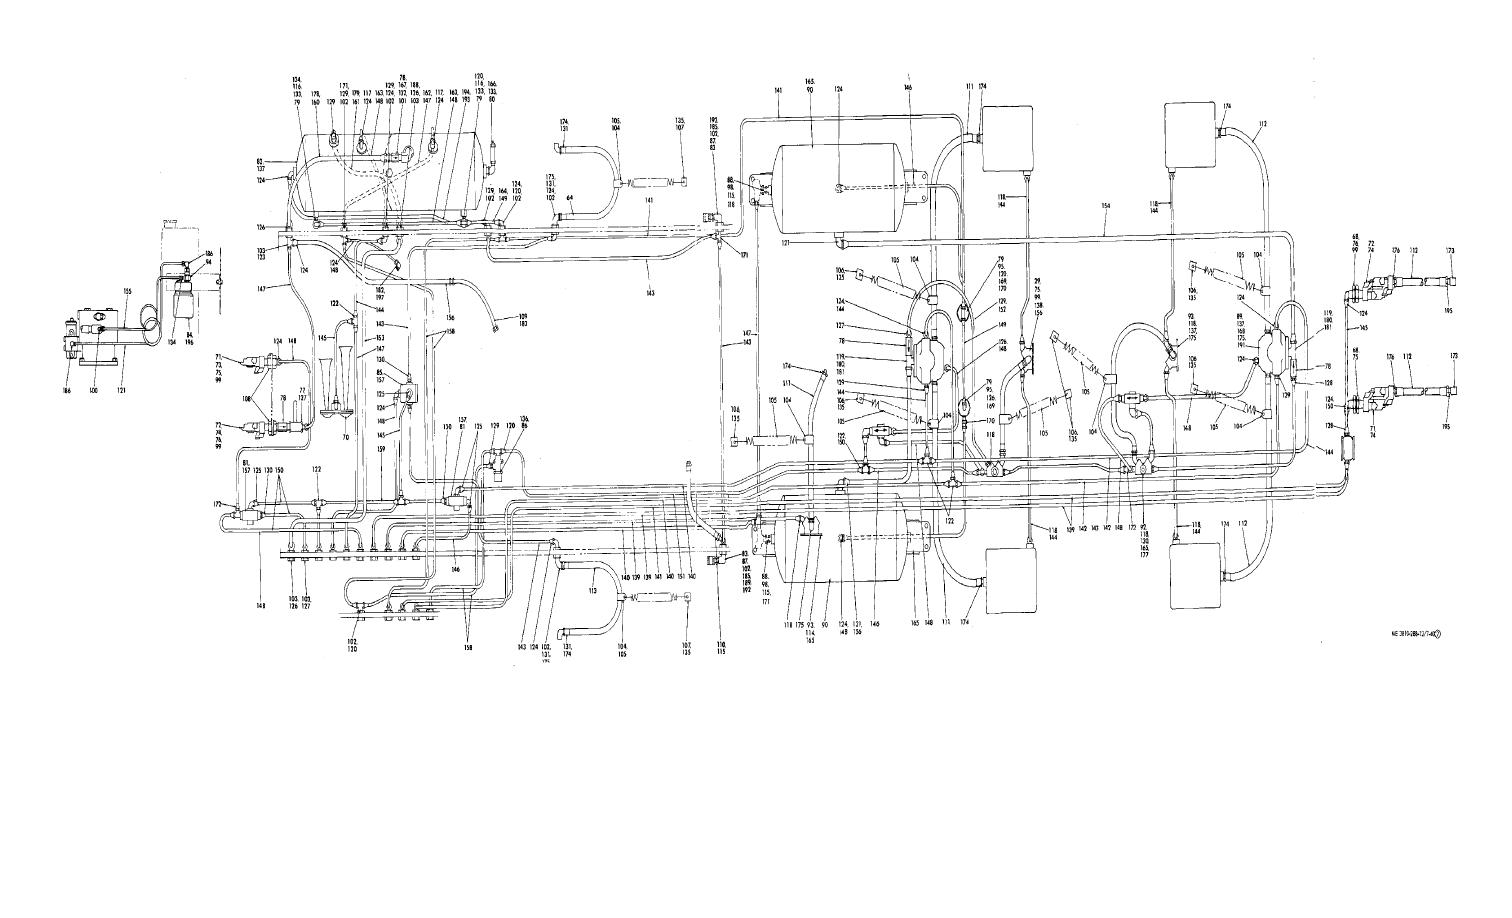 Wire Diagram For 1995 Kenworth W900 Cat 3406 2008 Ford Escape Fuse Box Astrany Honda 1997wir Jeanjaures37 Fr